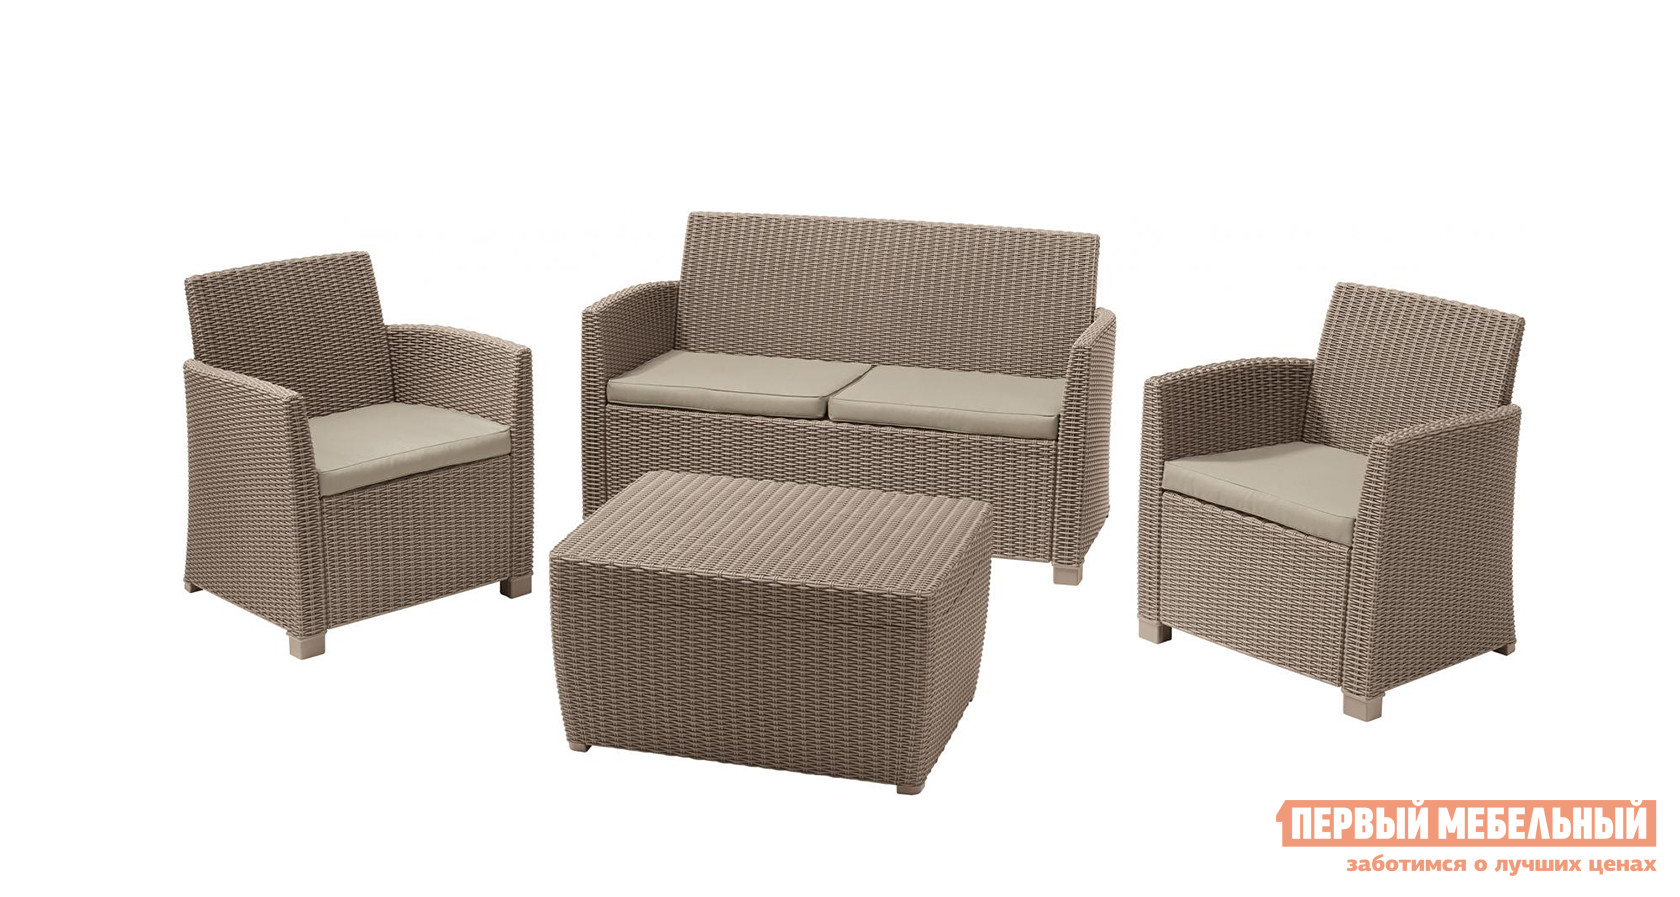 Комплект плетеной мебели Keter Комплект Corona set with cushion box wicker patio sofa set furniture with cushion and pillows manufacturer